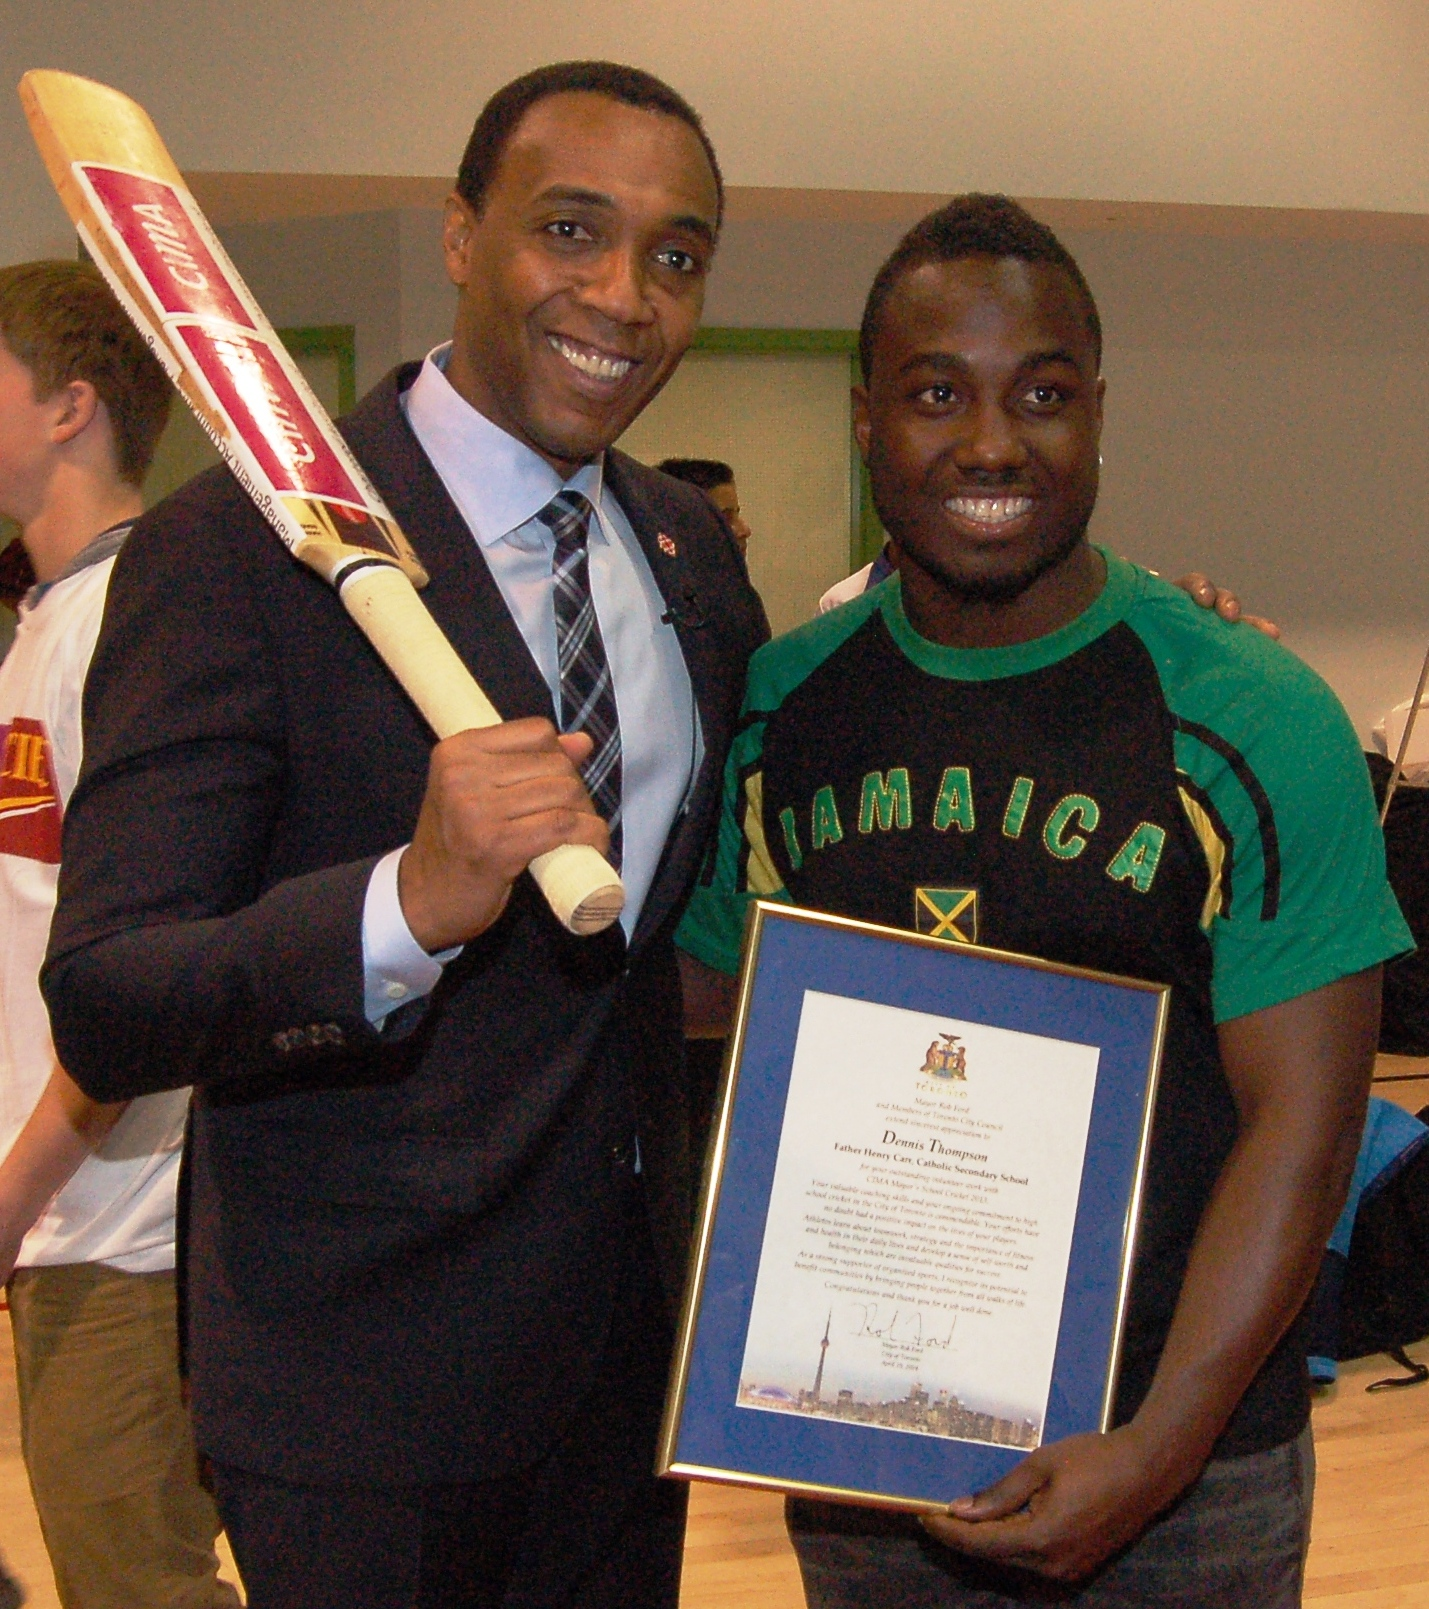 Carr student with dwight drummond.JPG